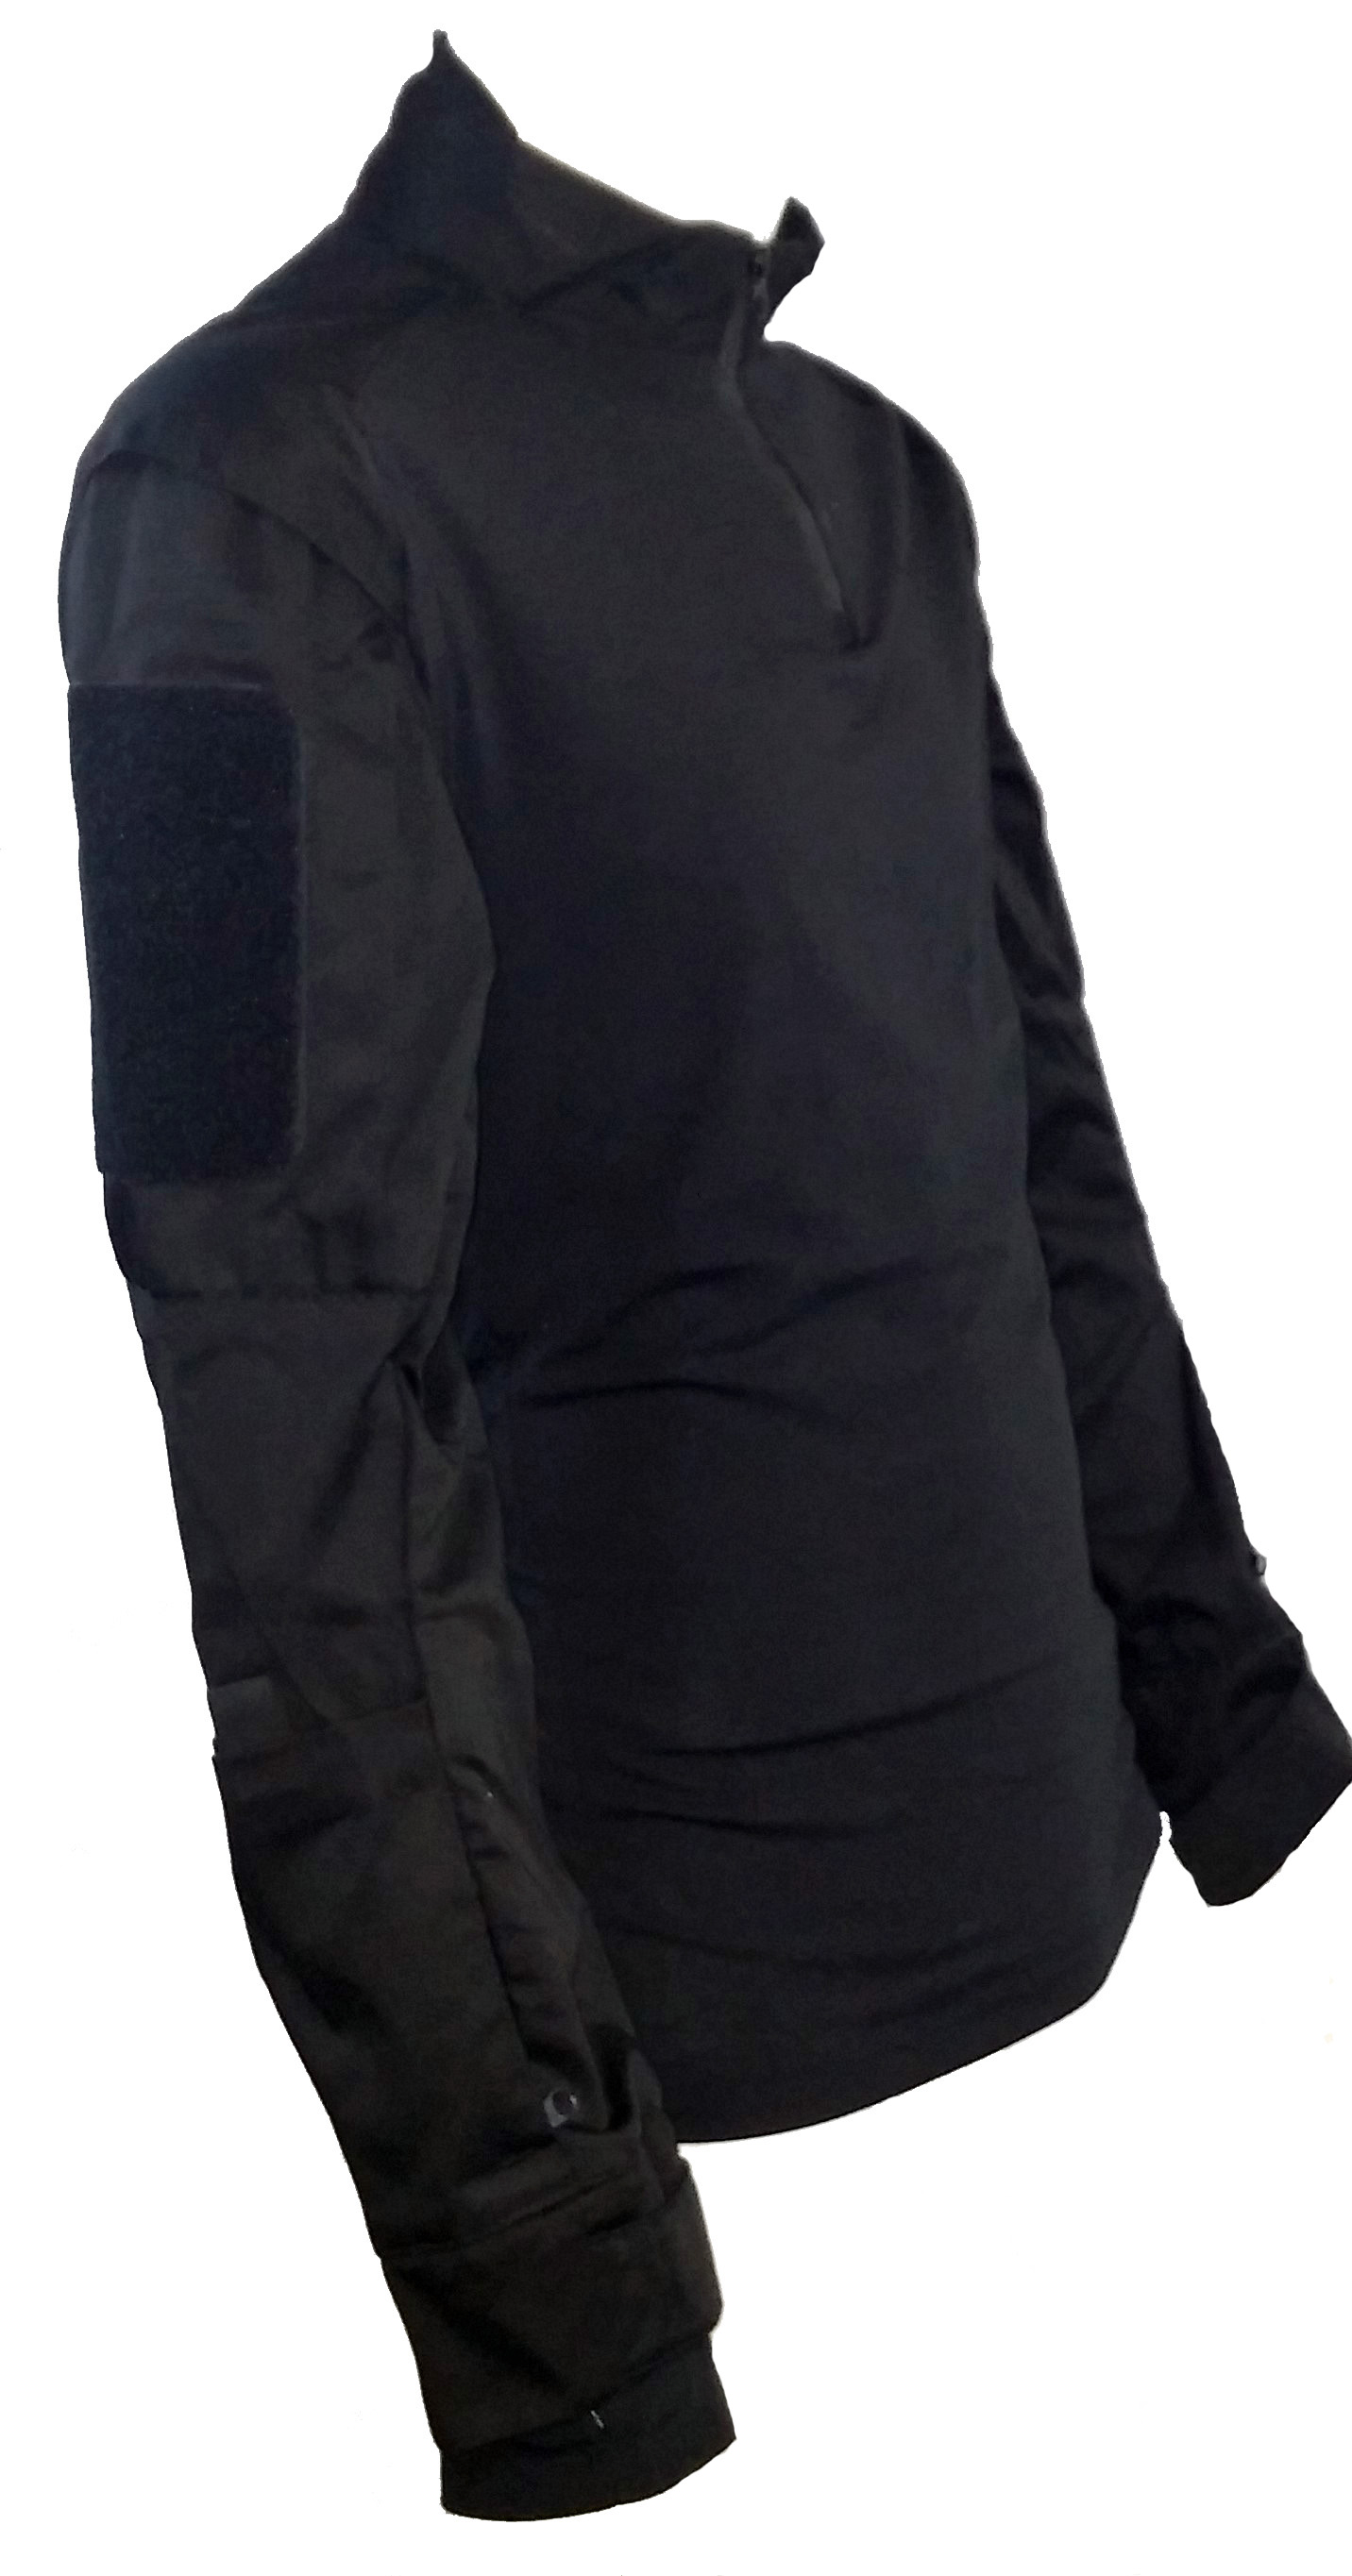 SGS black Tactical sweater